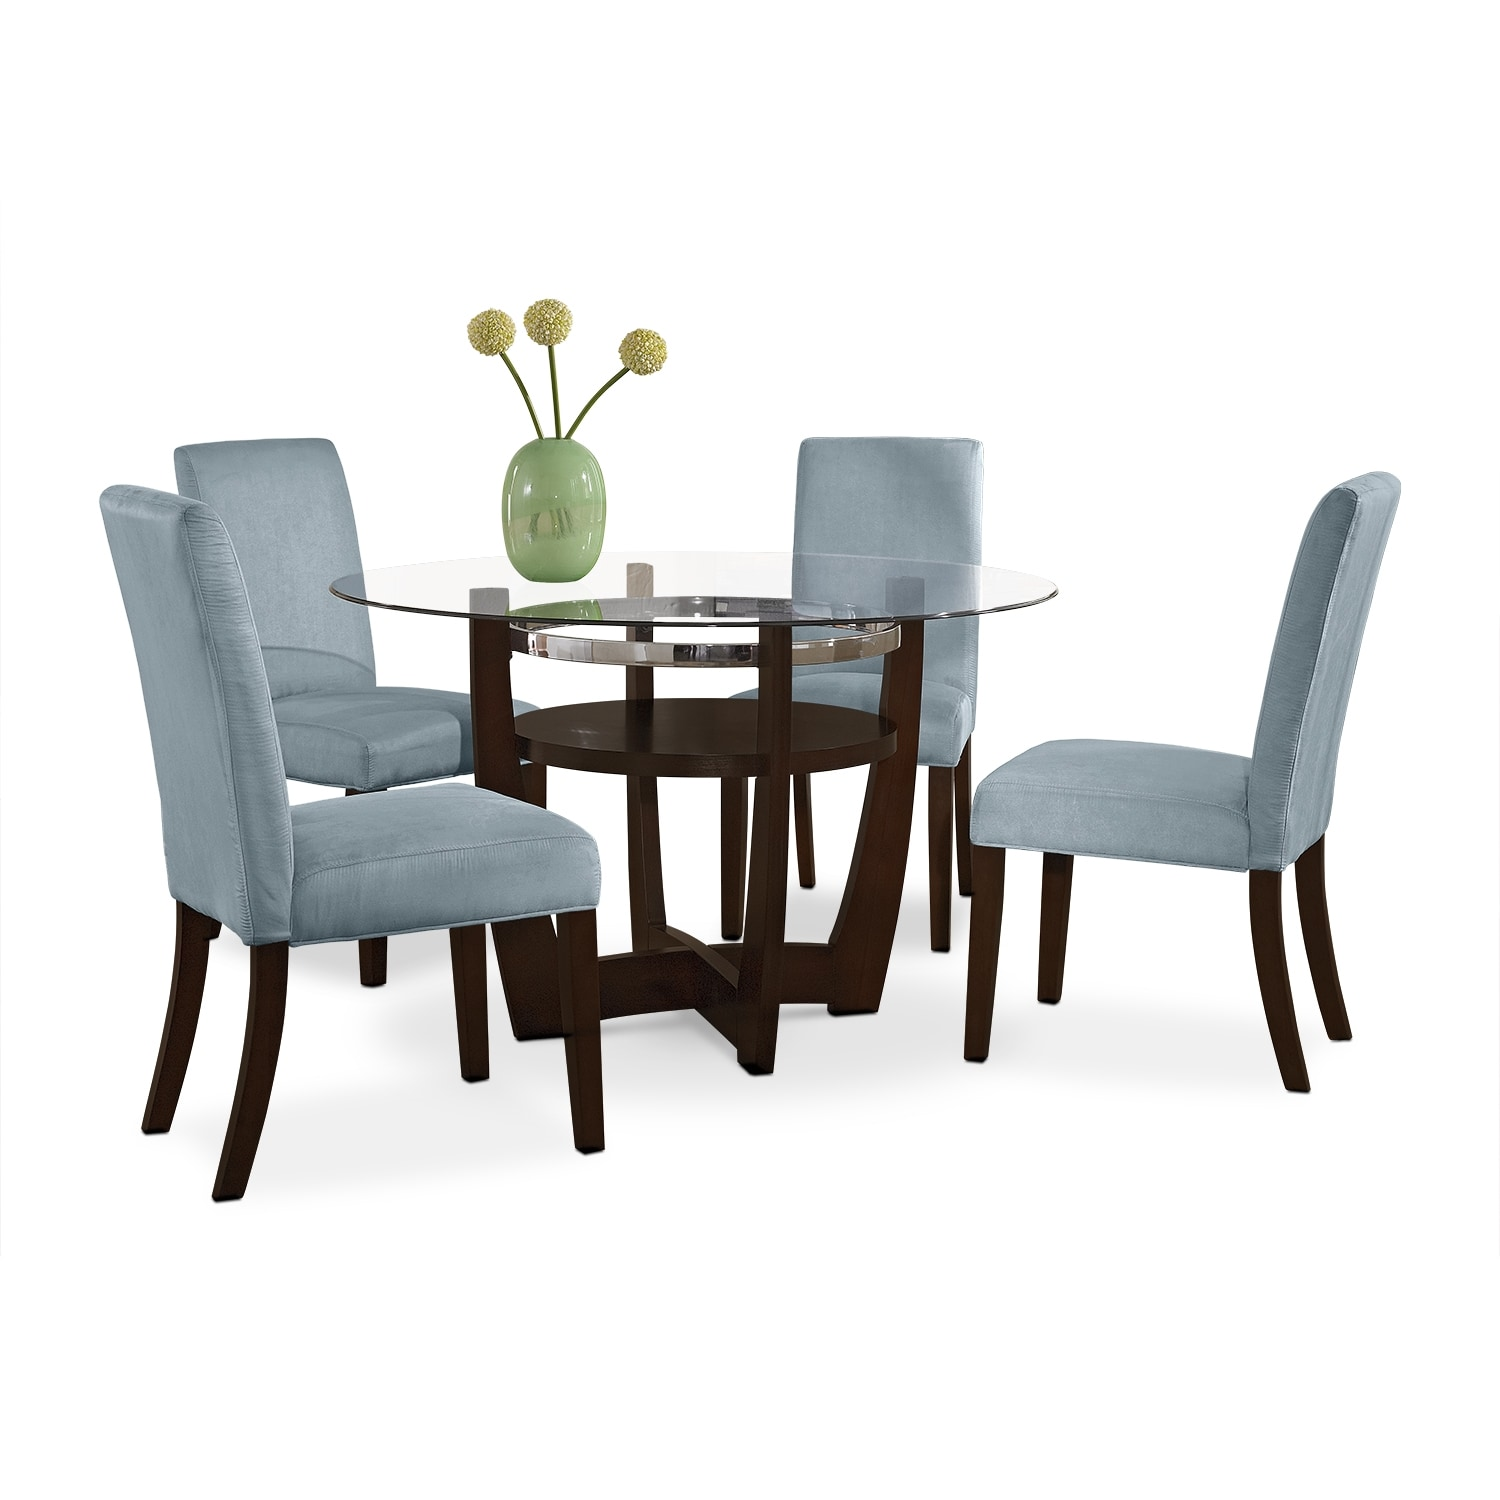 Dining Room Furniture - Alcove Dinette with 4 Side Chairs - Aqua